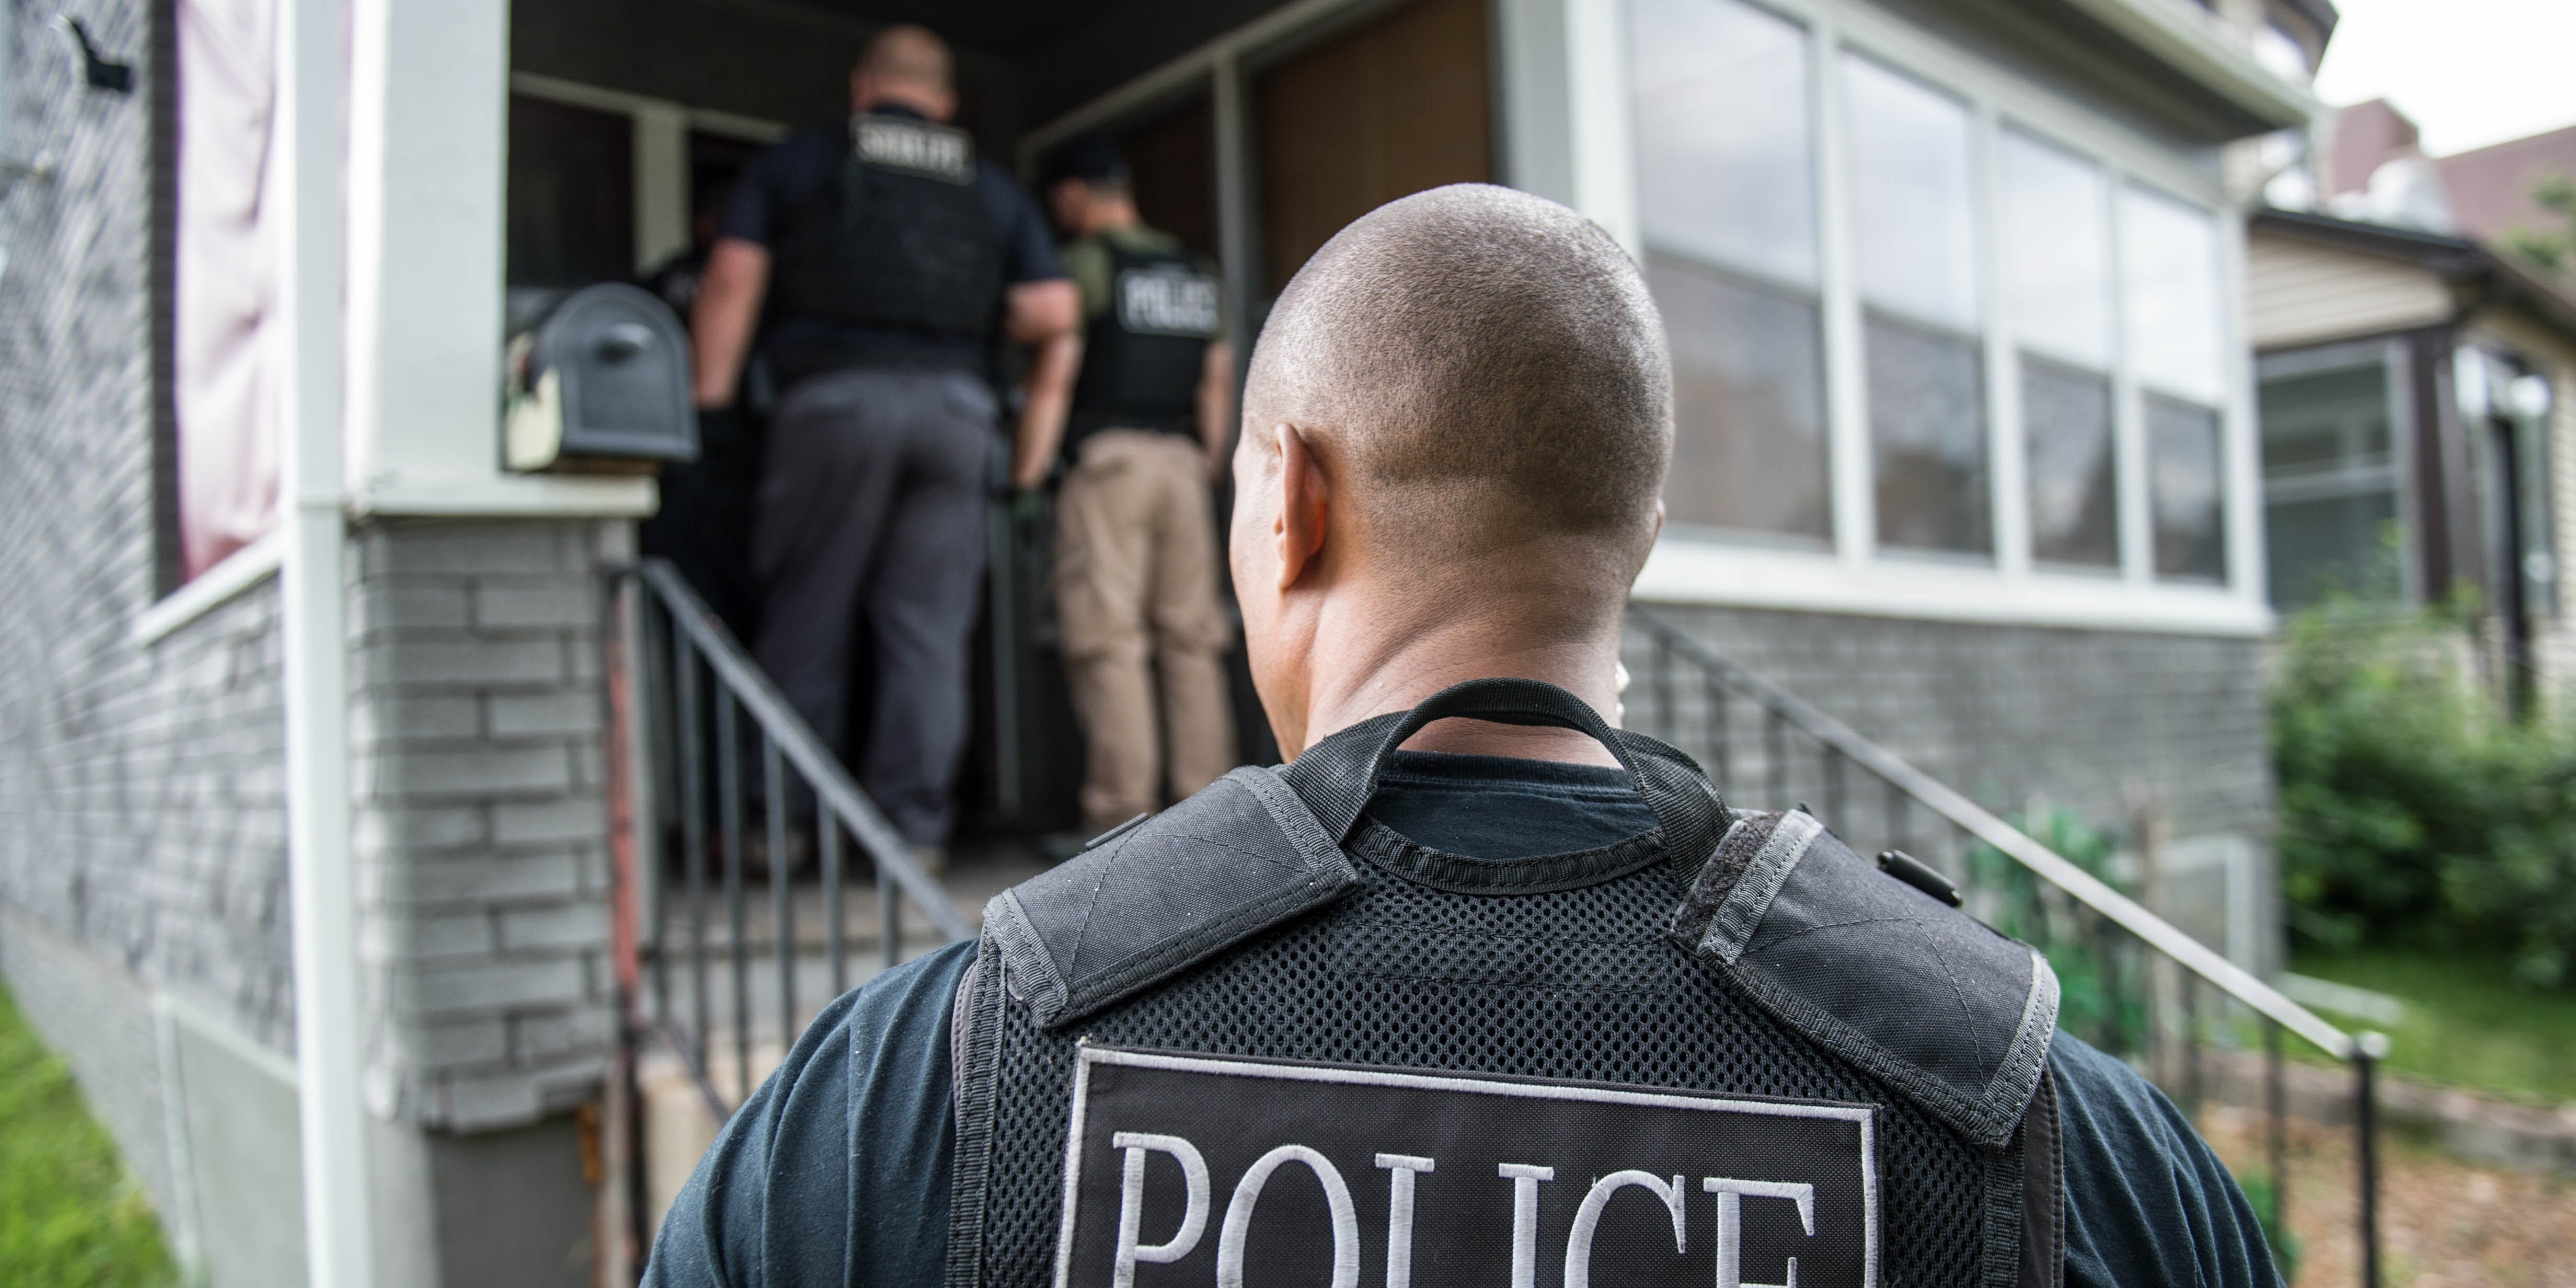 Denver police recently raided illegal grows in Canada. Here, The US Marshals Service, Omaha Police Department and numerous other state and local agencies are shown in an operation to crack down on gang members